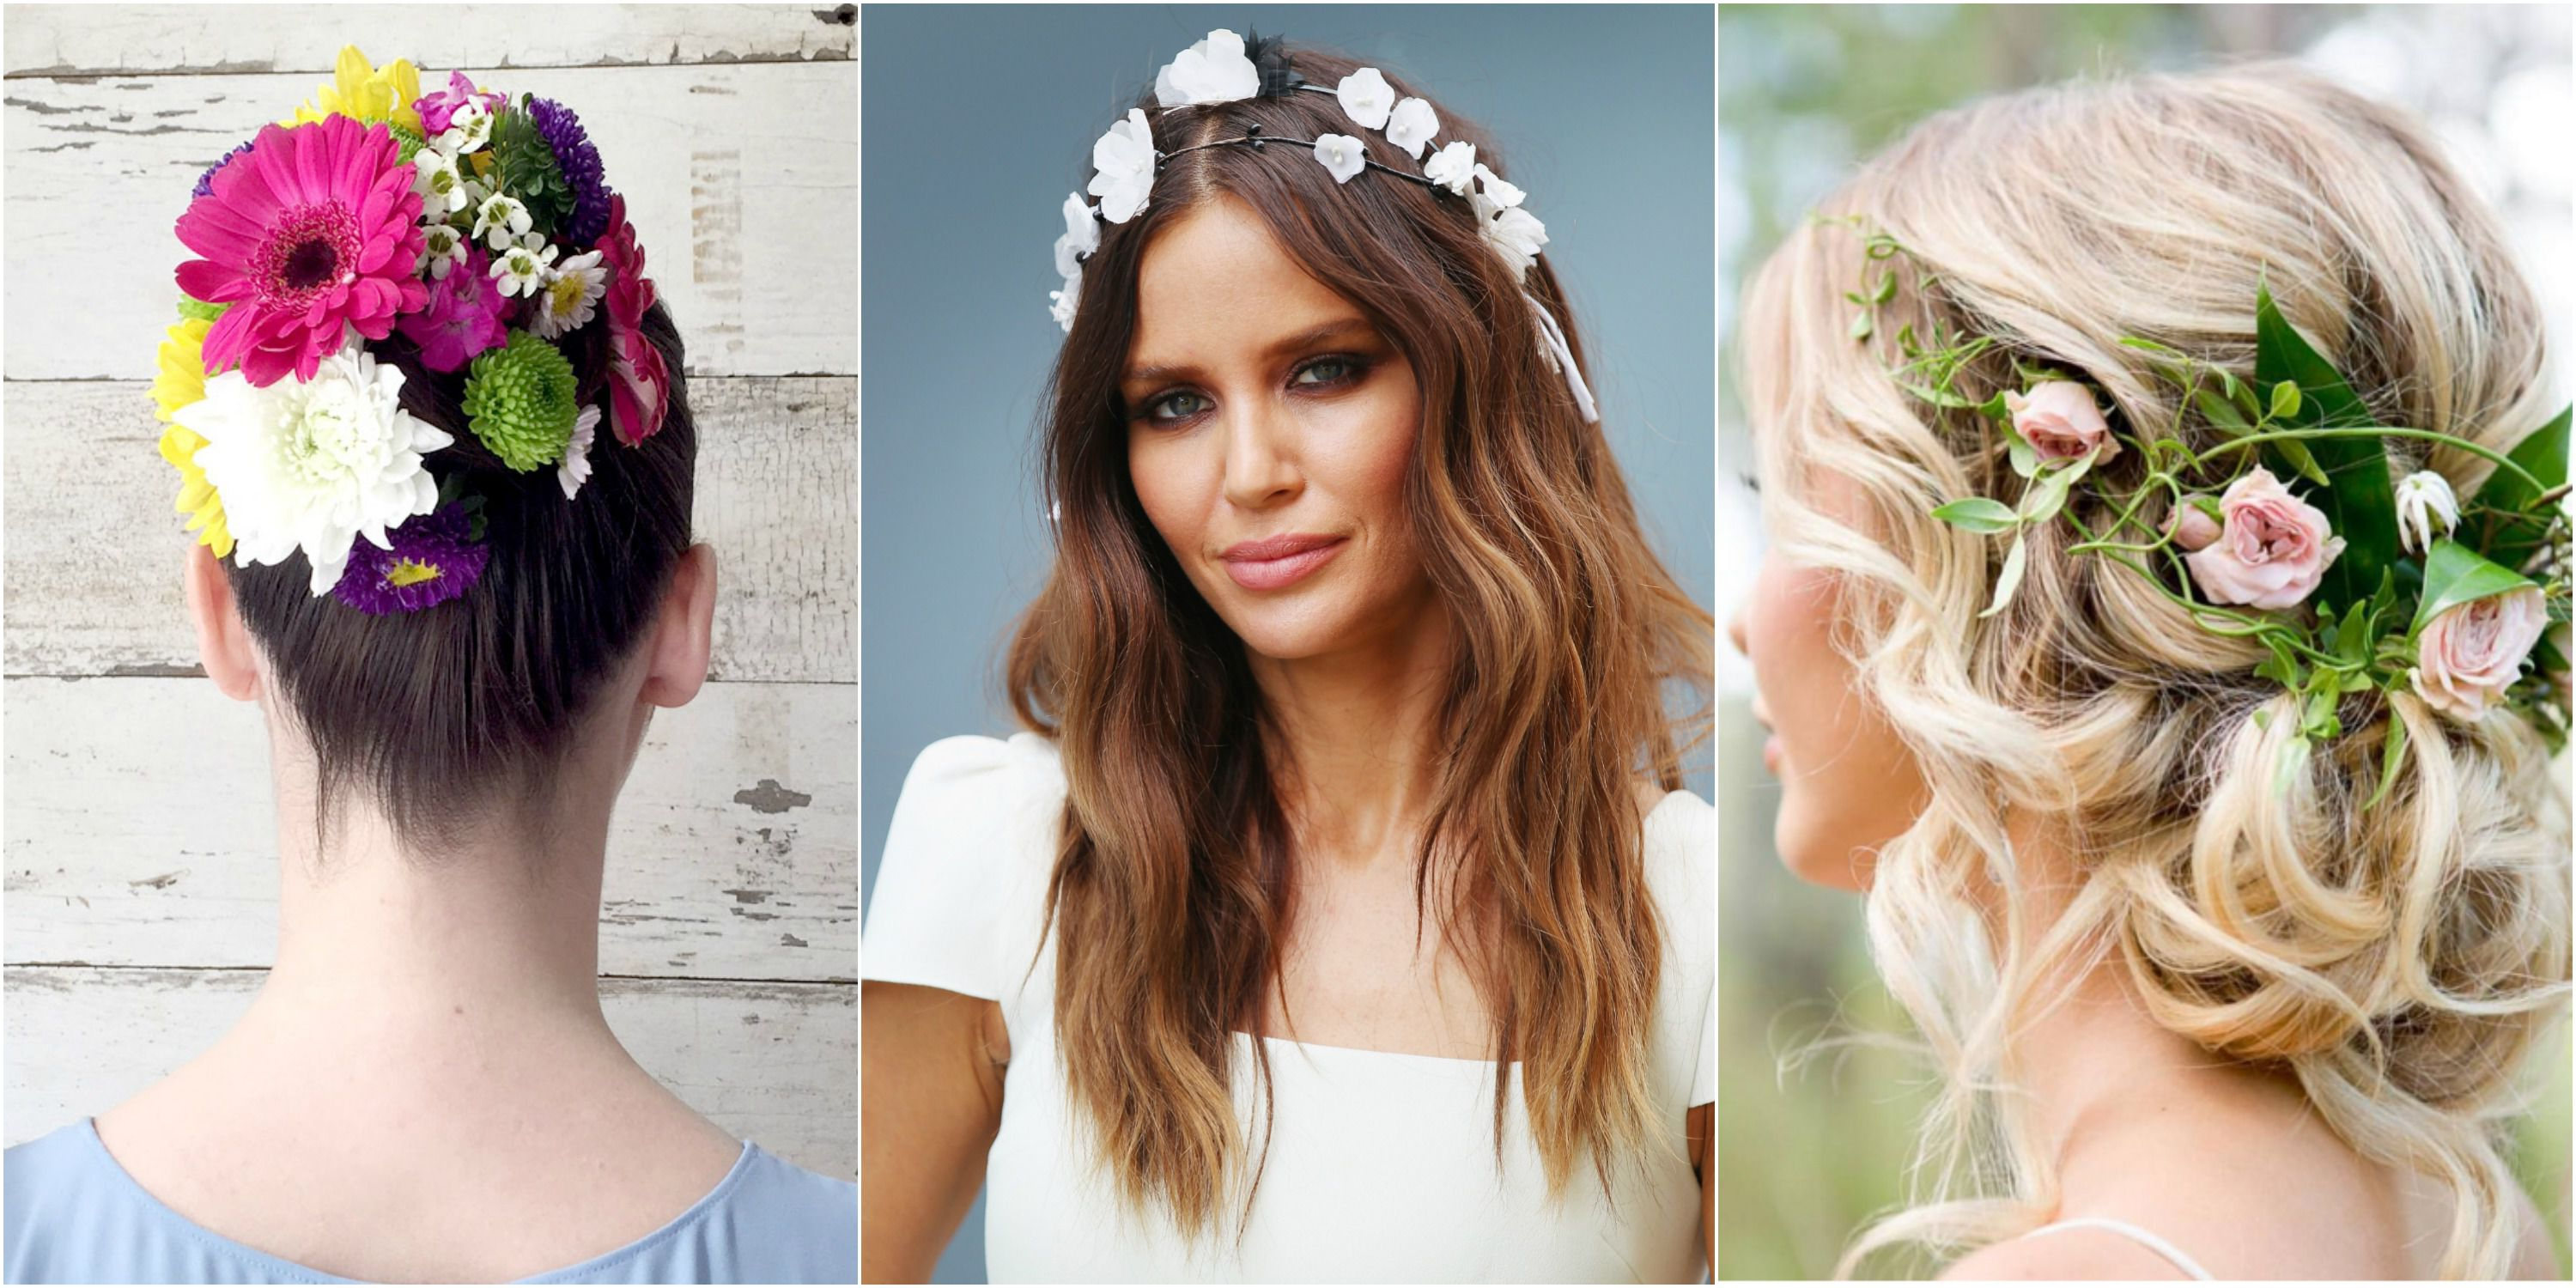 12 Pretty Flower Crowns And Floral Hairstyles — Flower Hairstyles With Preferred Flower Tiara With Short Wavy Hair For Brides (View 1 of 20)